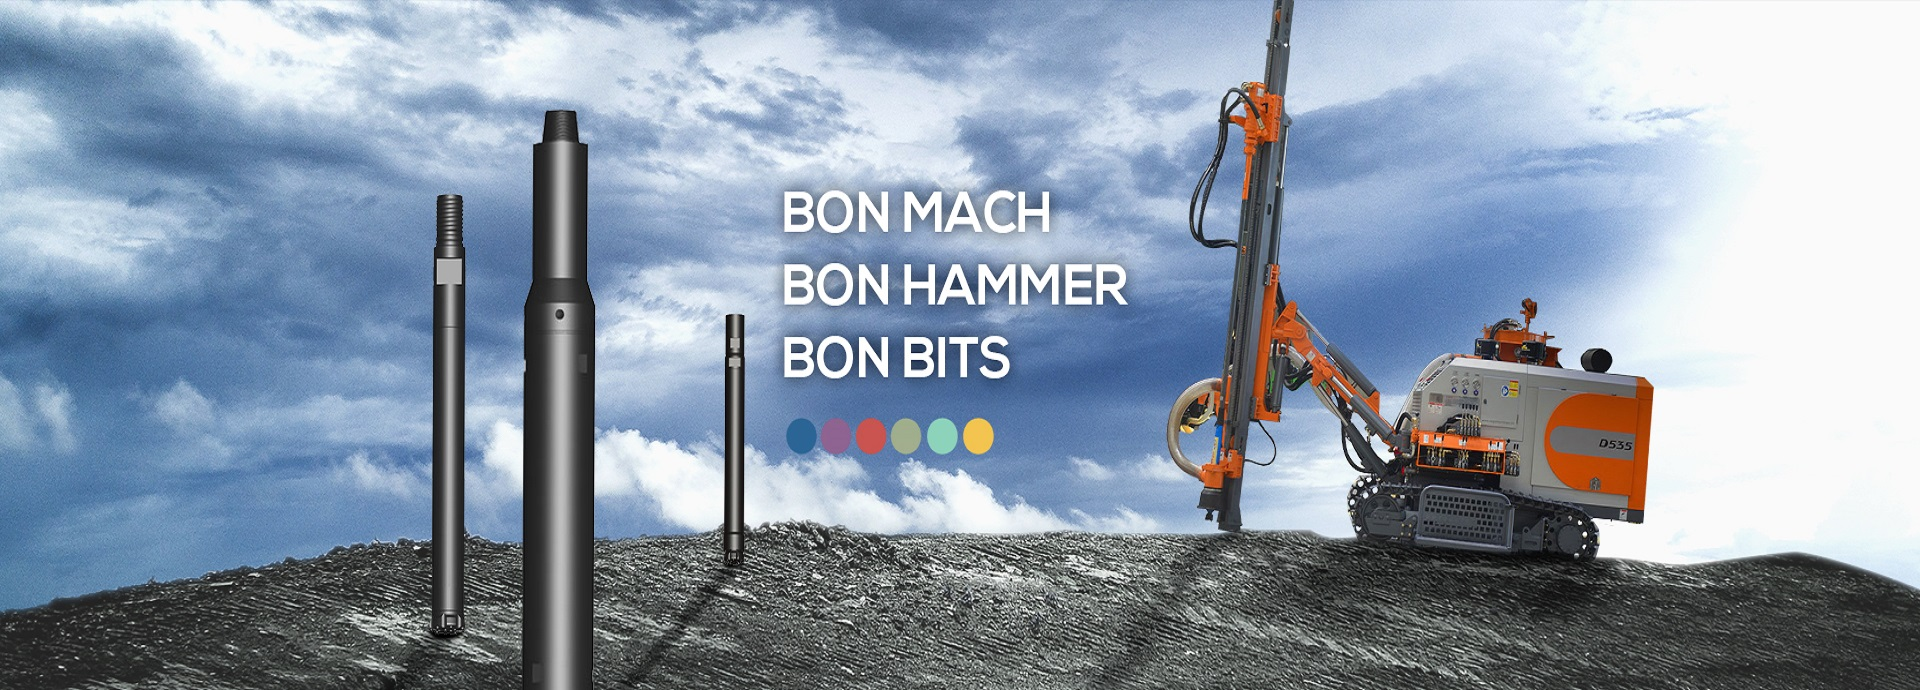 BONMACH-Rock drill hammers manufacturer and supplier